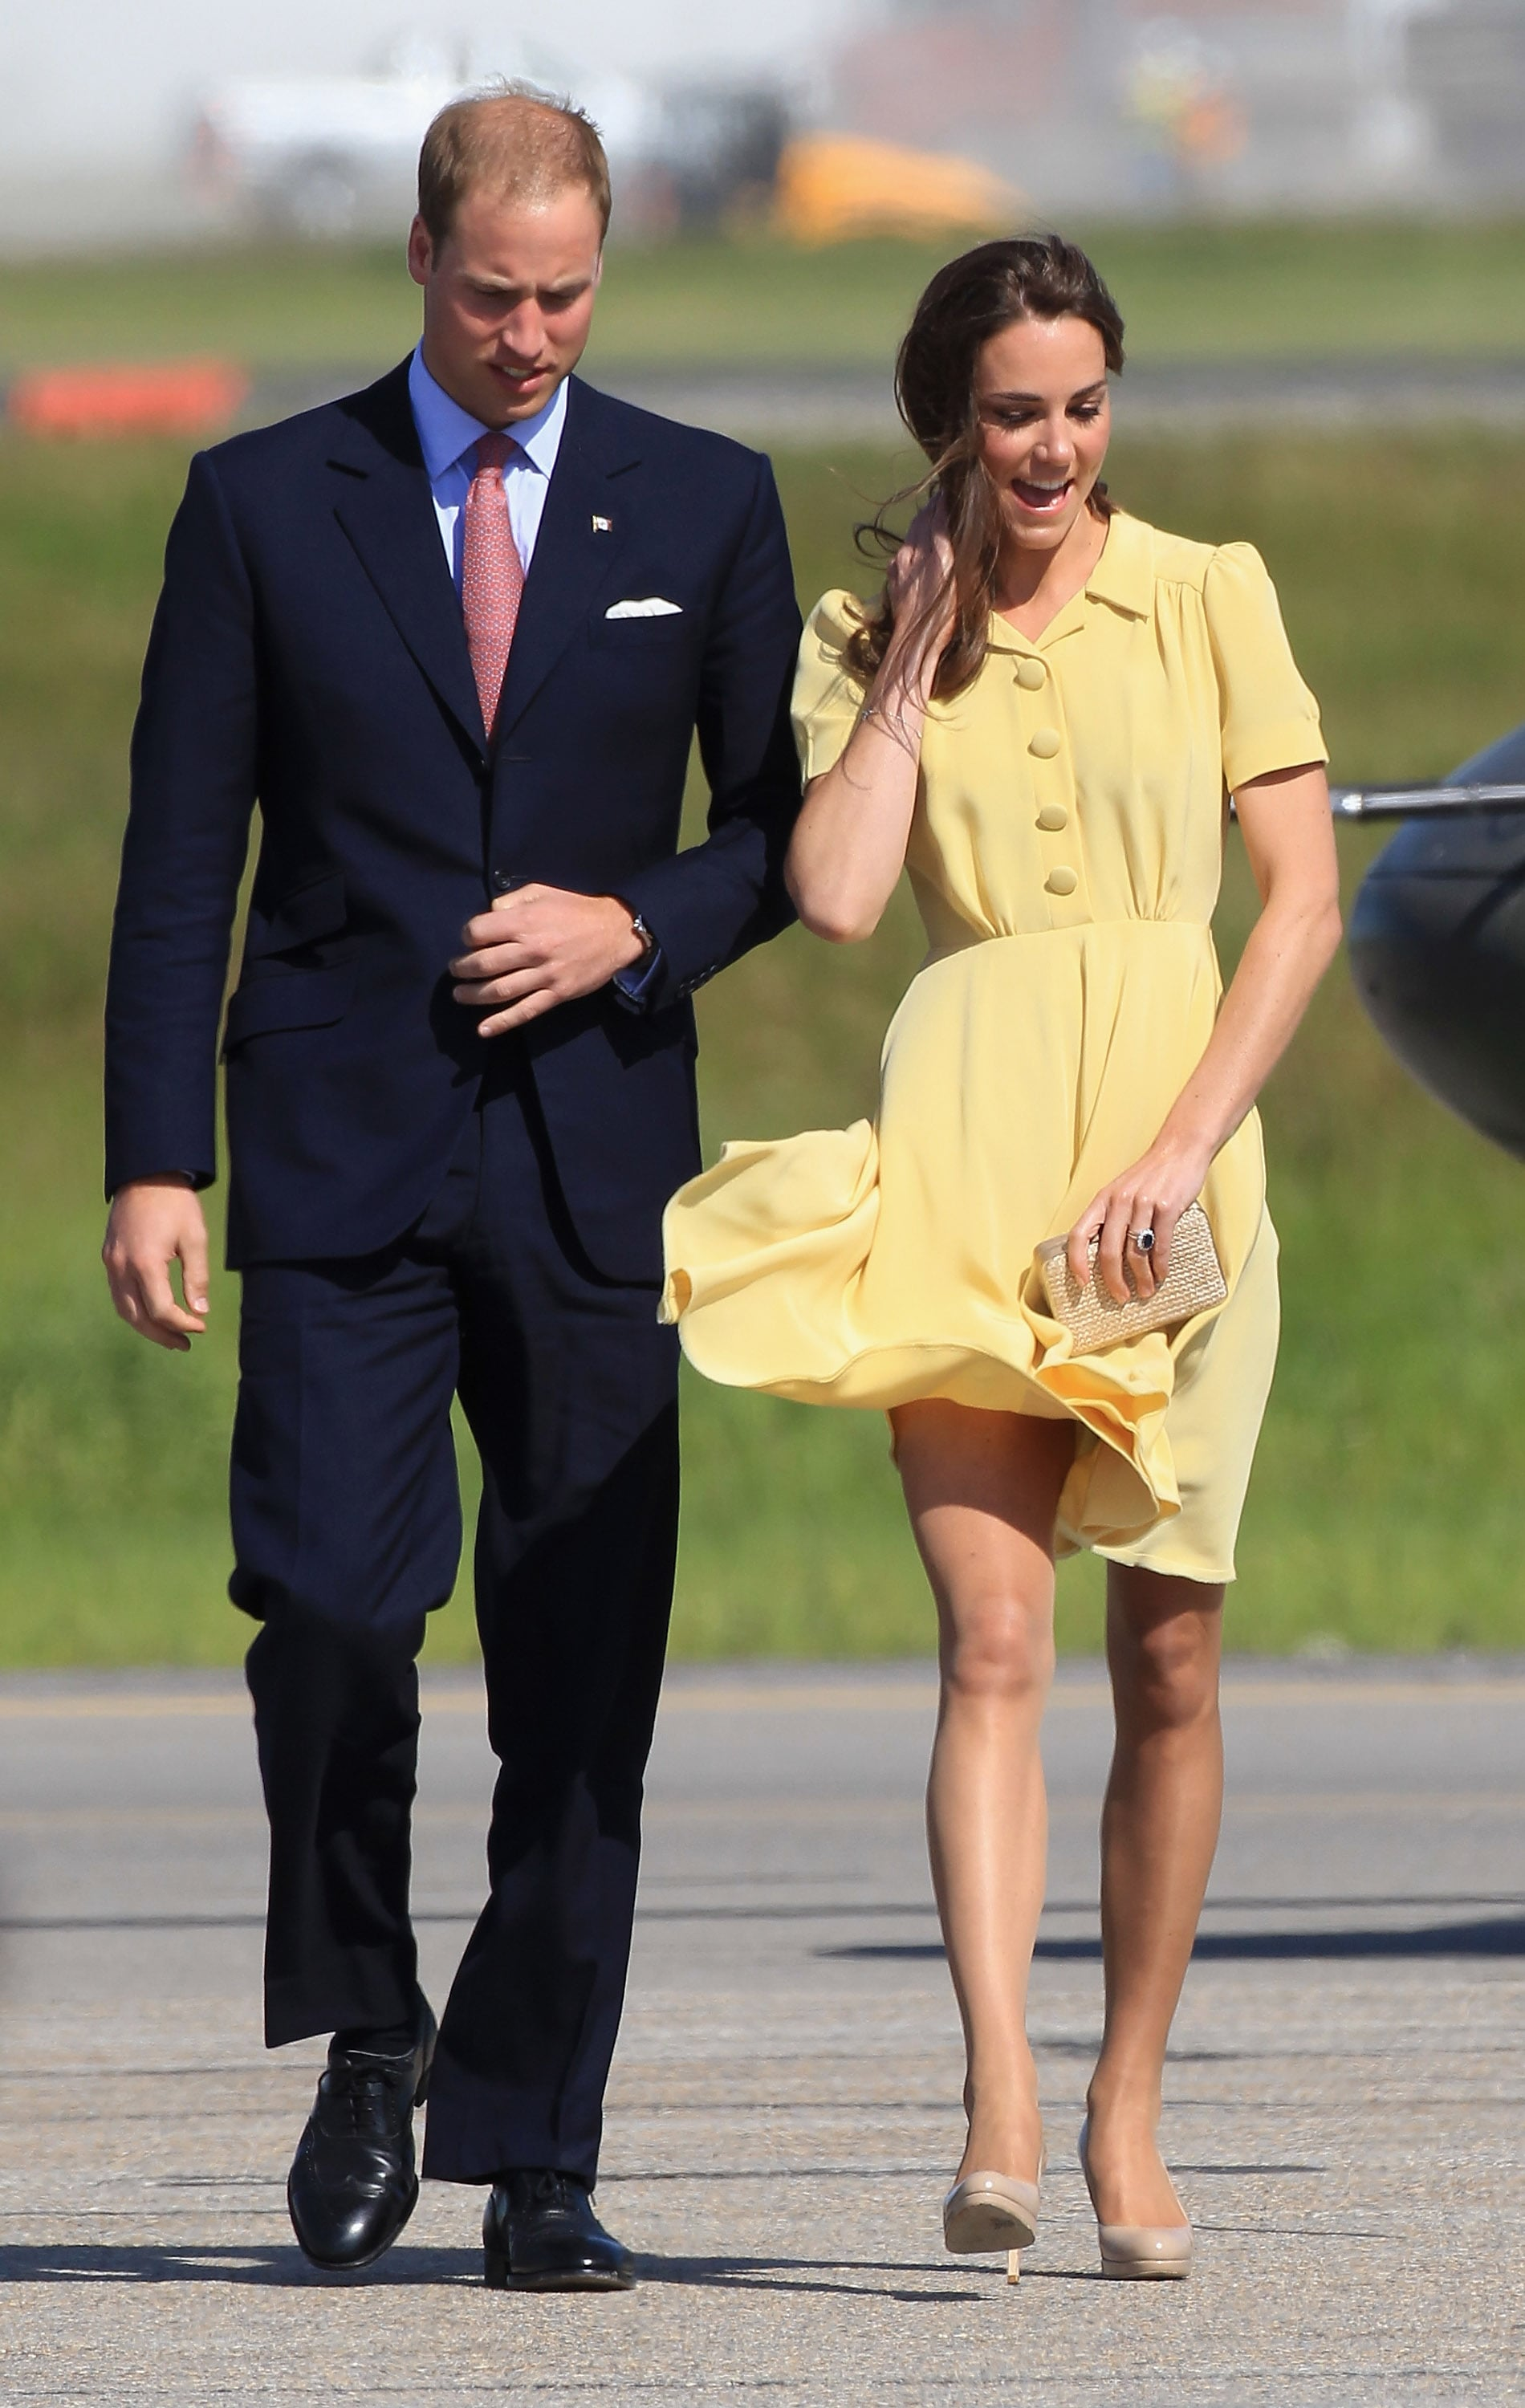 The wind almost caused a wardrobe malfunction for Kate!